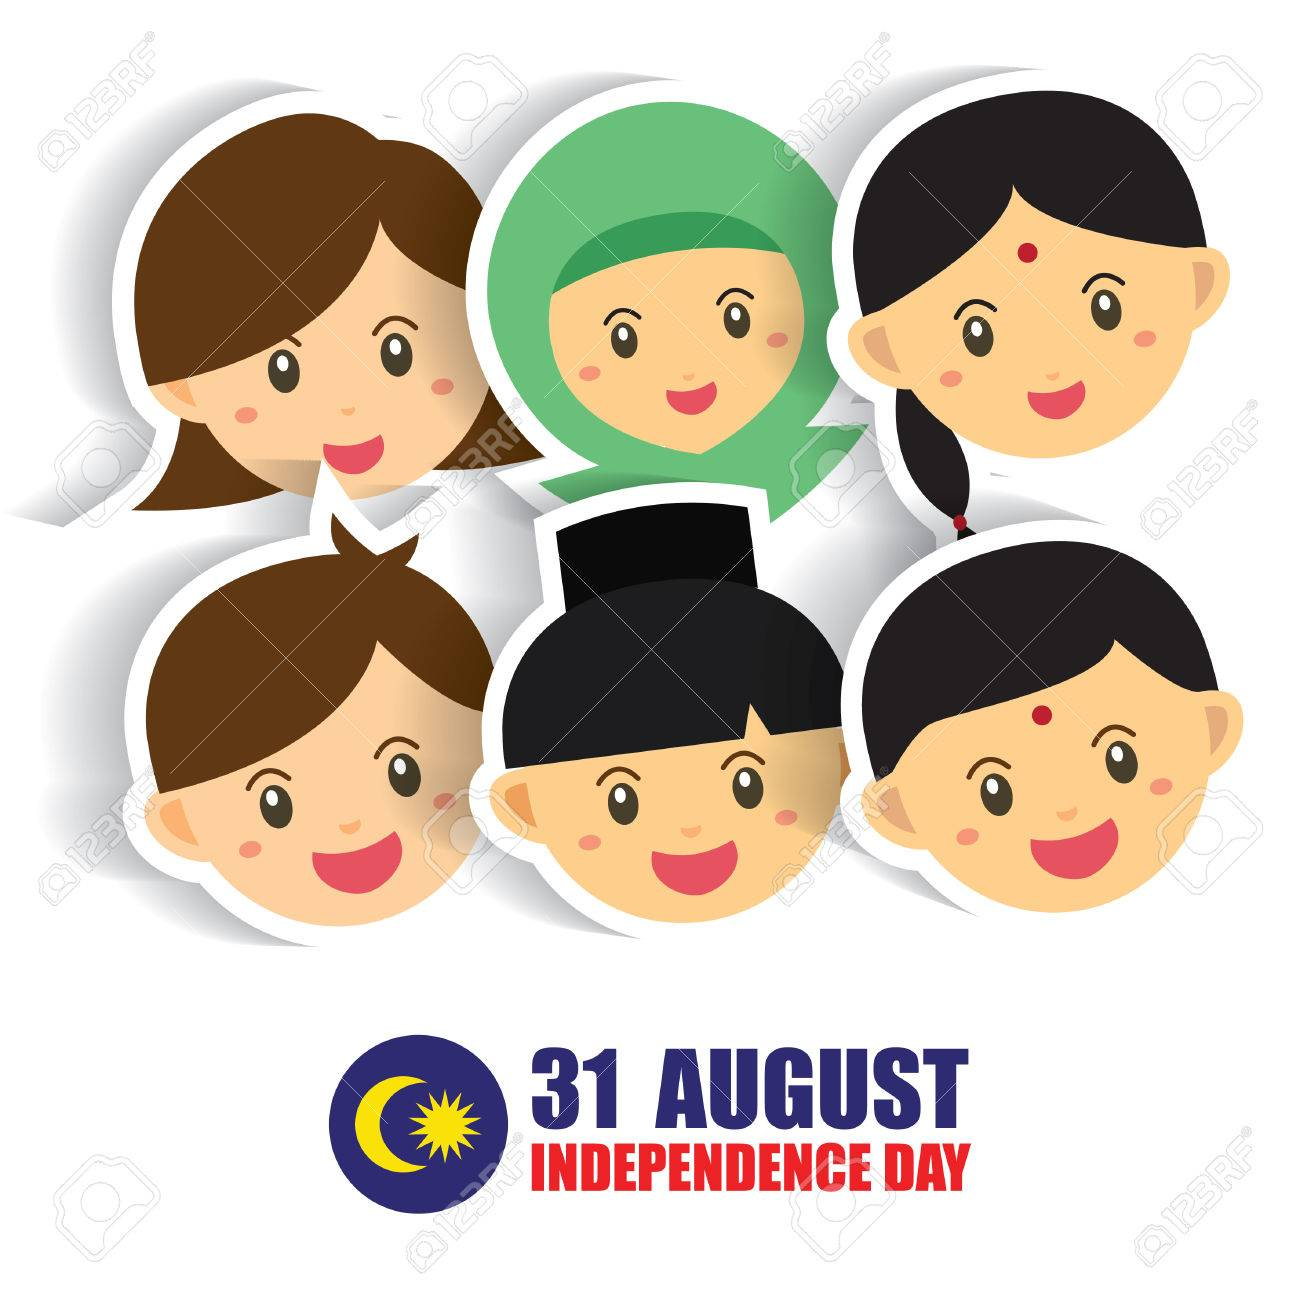 Malaysia National / Independence Day illustration. Cute cartoon character kids of Malay, Indian & Chinese hand in hand with Malaysia flag icon. 31 August, Merdeka. - 84222376